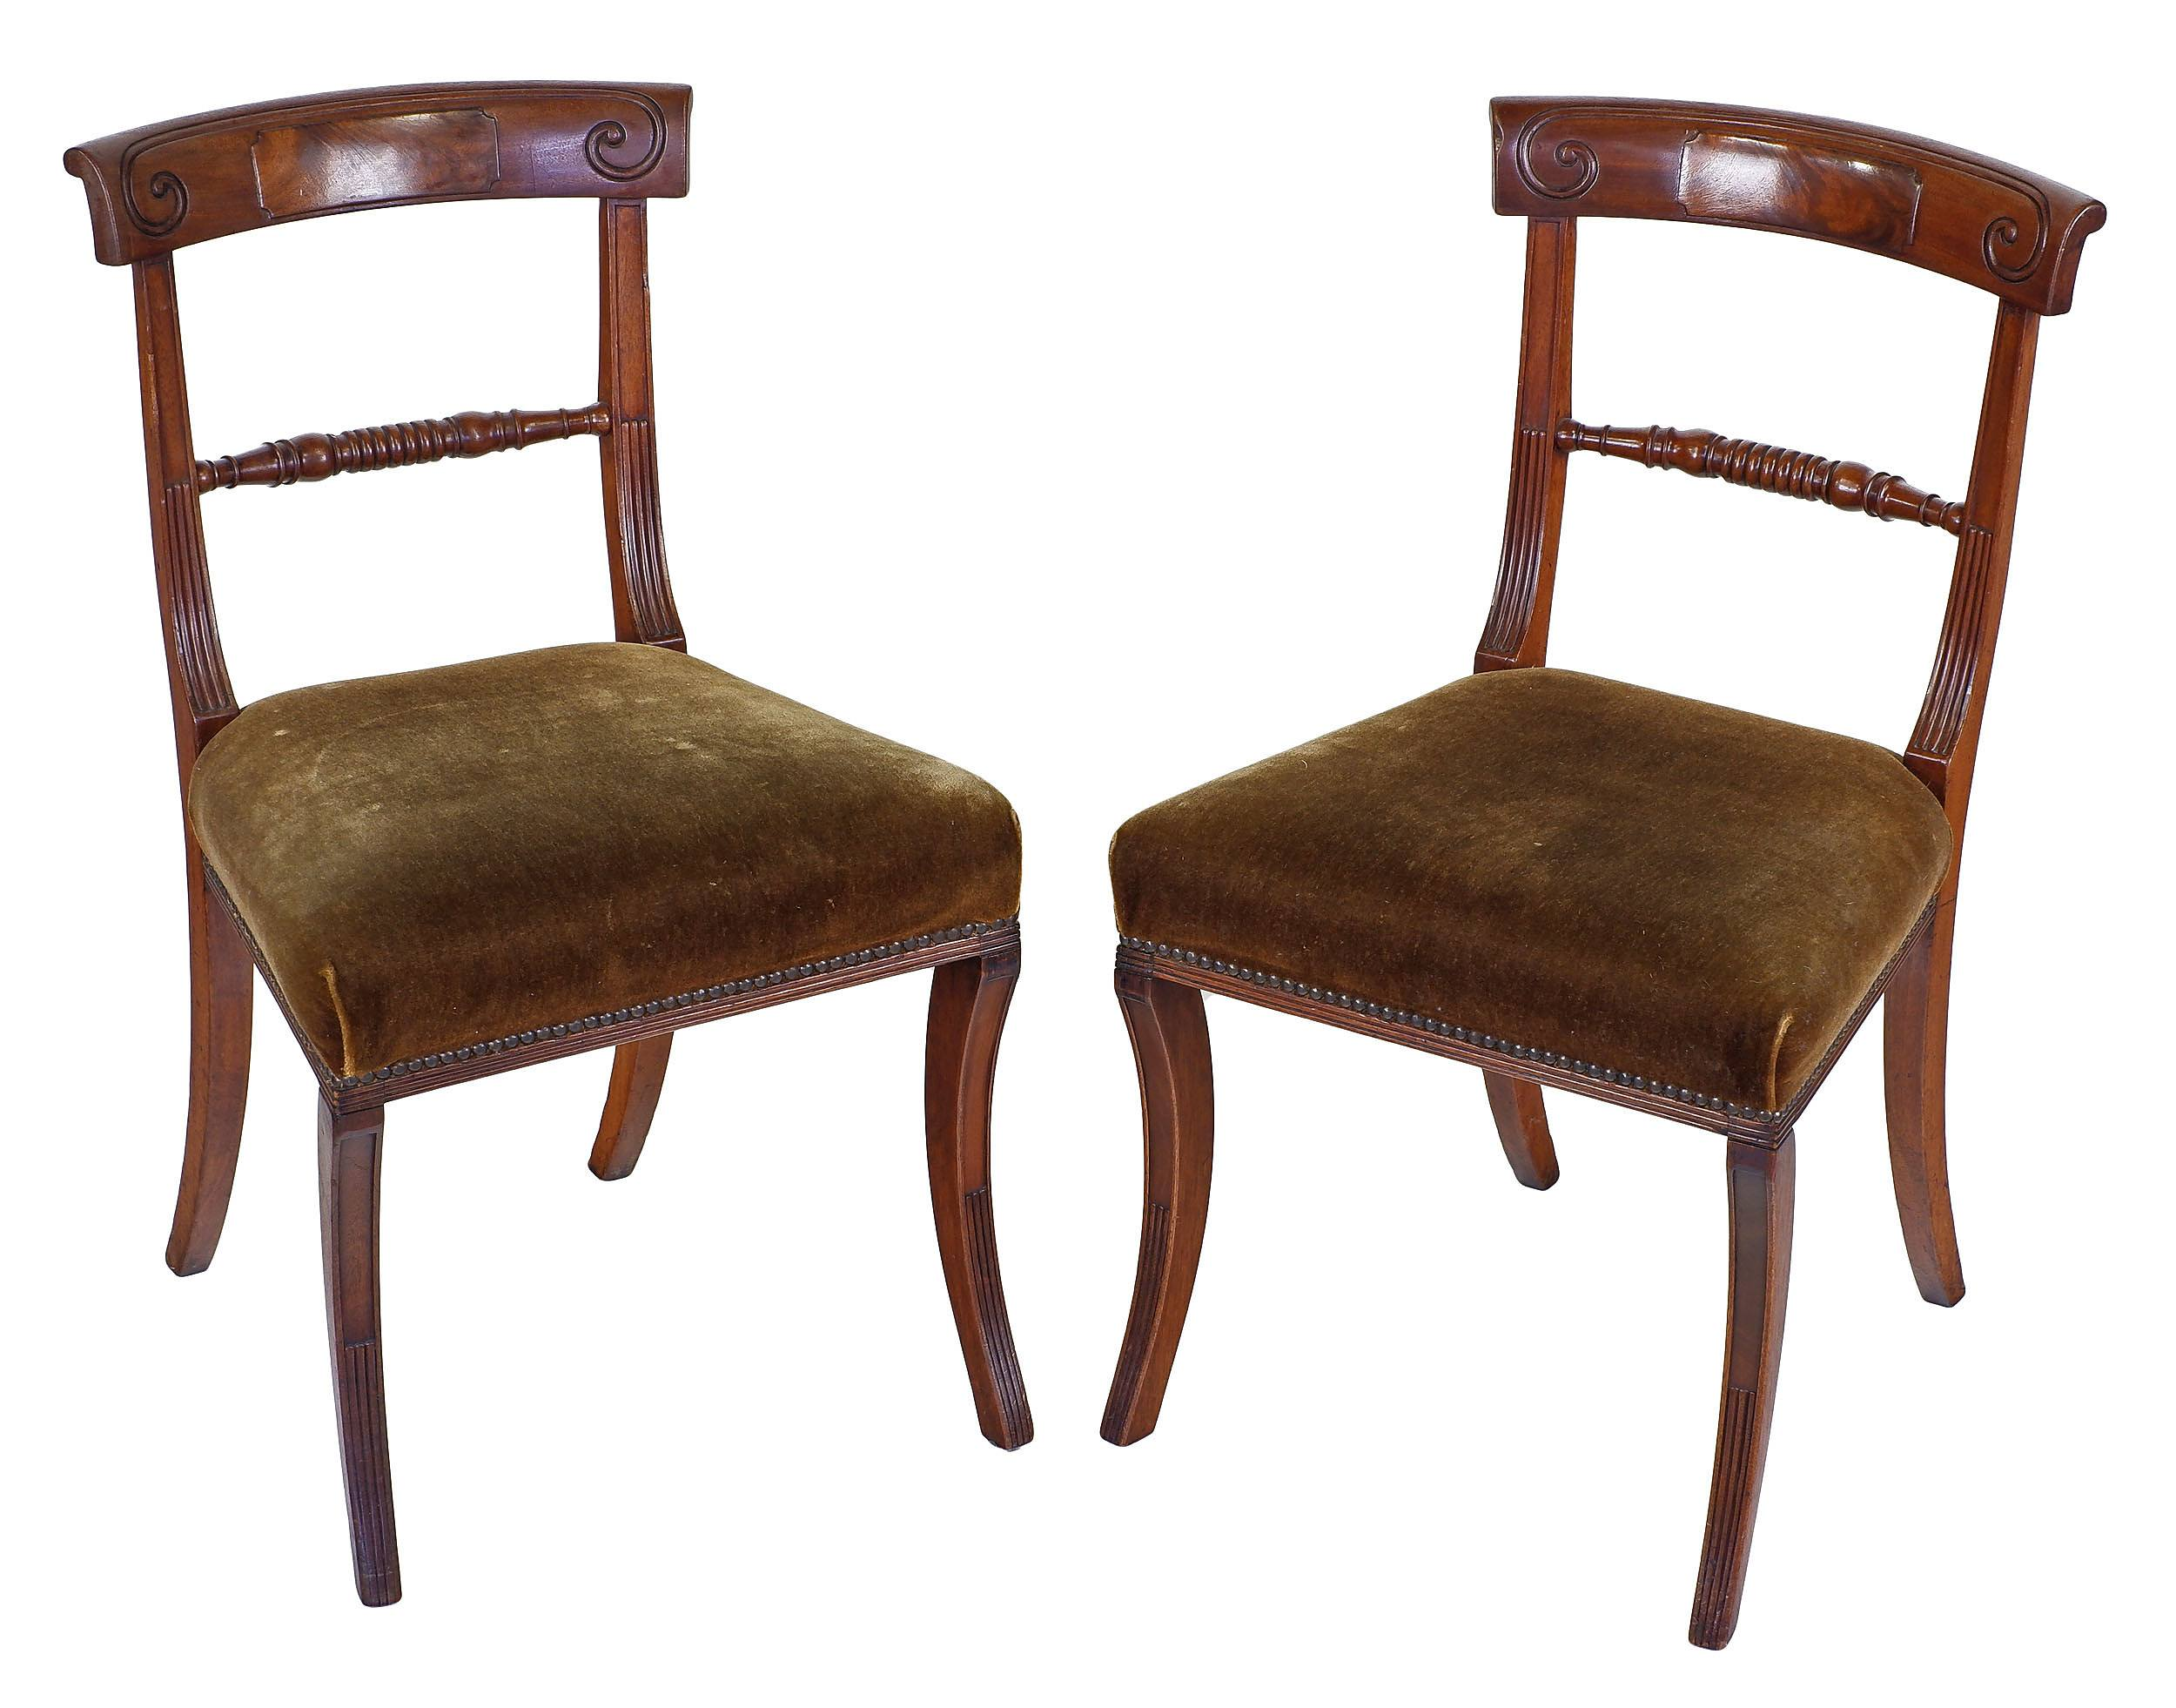 'Pair Of Regency Mahogany Dining Chairs with Olive Green Velvet Upholstery Circa 1820'